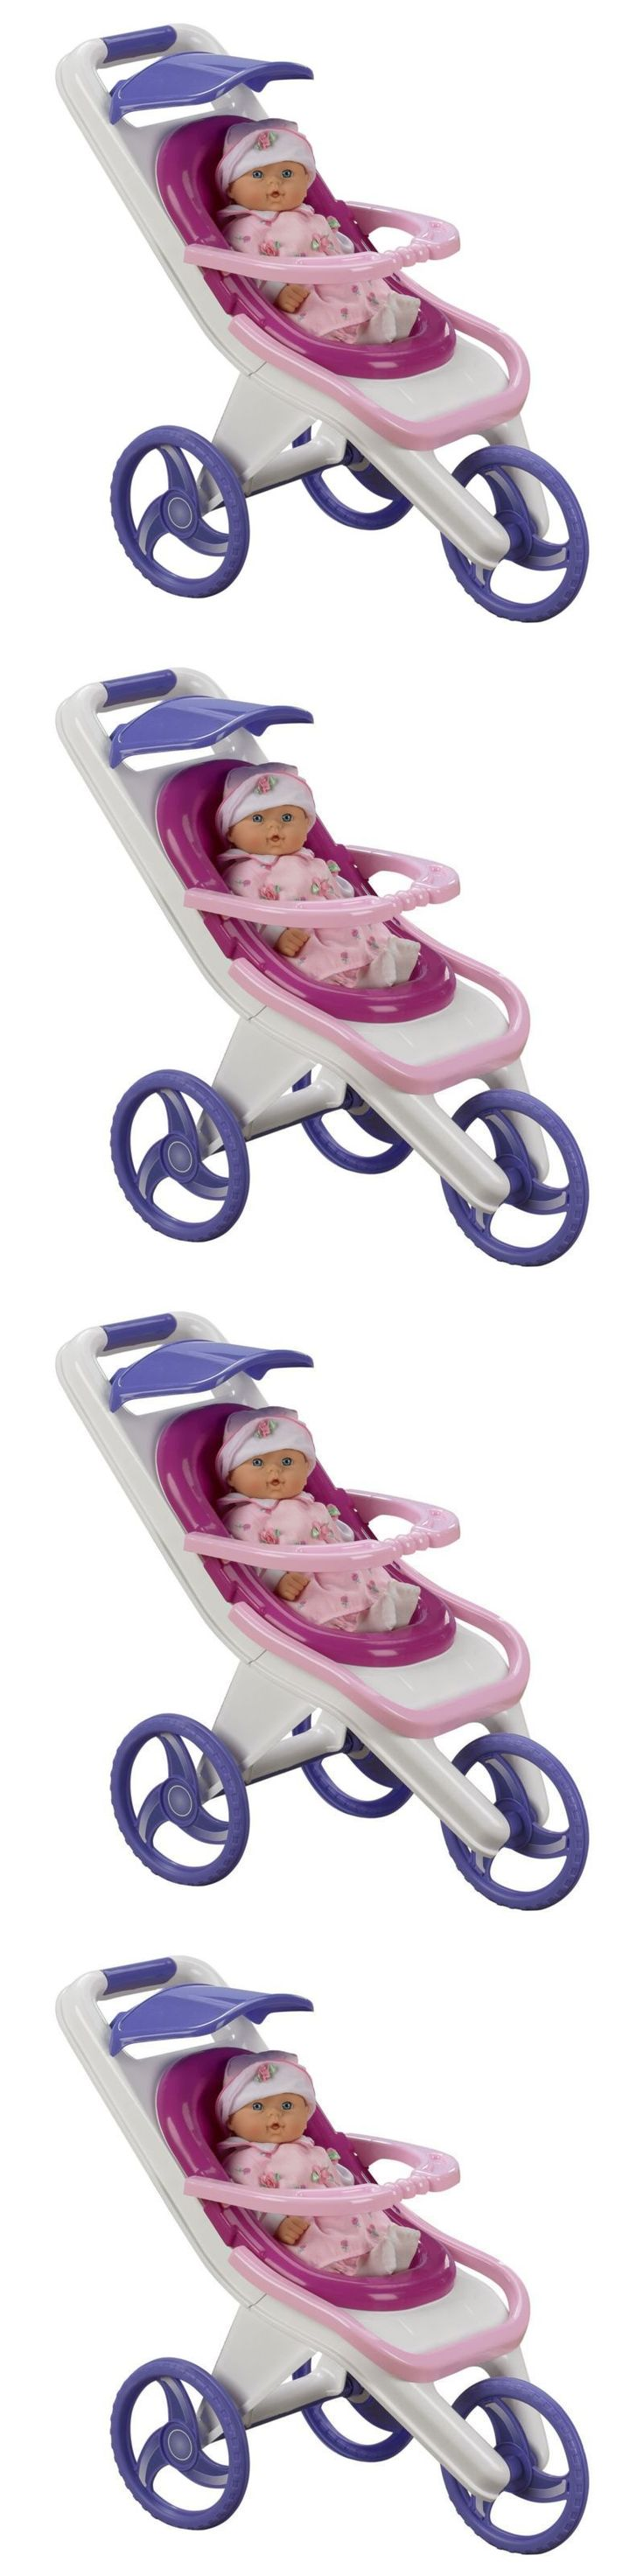 Other Preschool and Pretend Play 19181: 3 In 1 Baby Doll Stroller Toy For Girls Pretend Play With Carrier Feeding Chair -> BUY IT NOW ONLY: $32.92 on eBay!